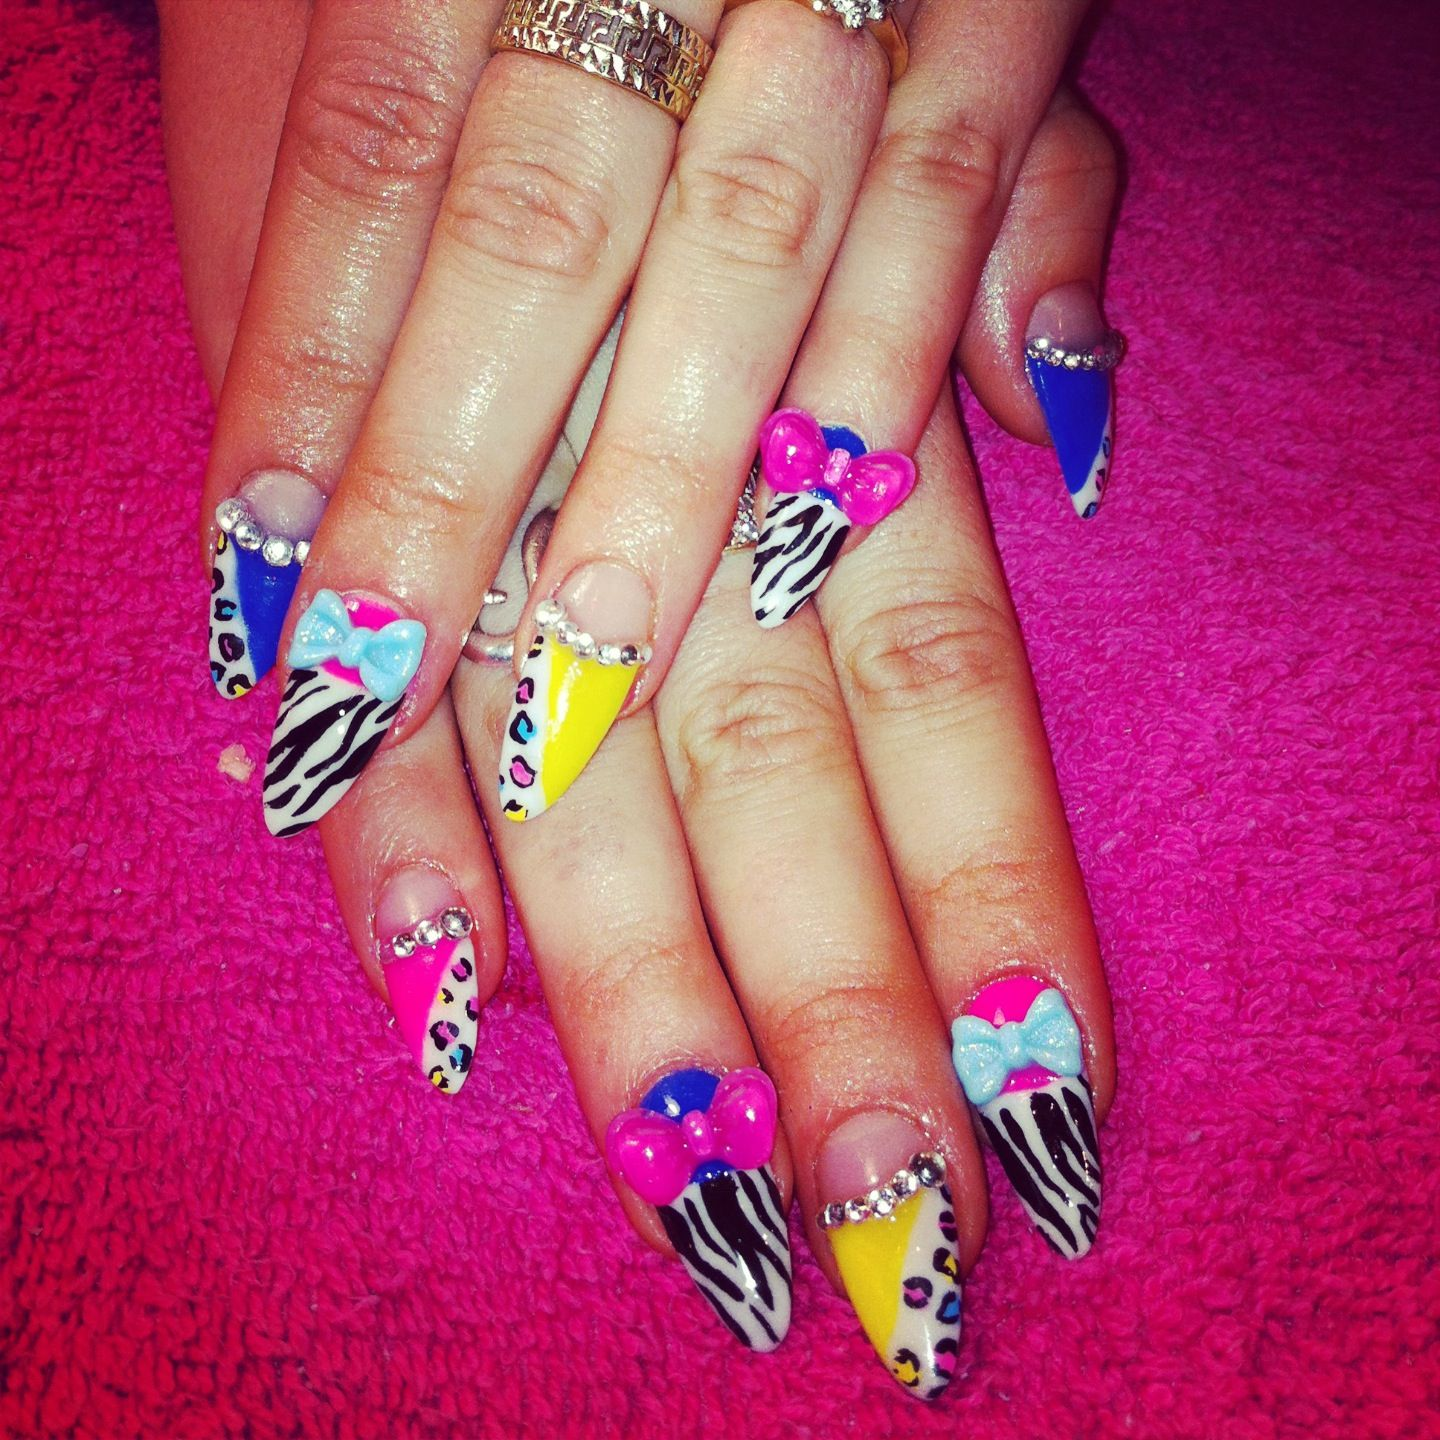 Nicki Minaj nails. MYX it up at MYXFusions.com | Nails | MYX ...